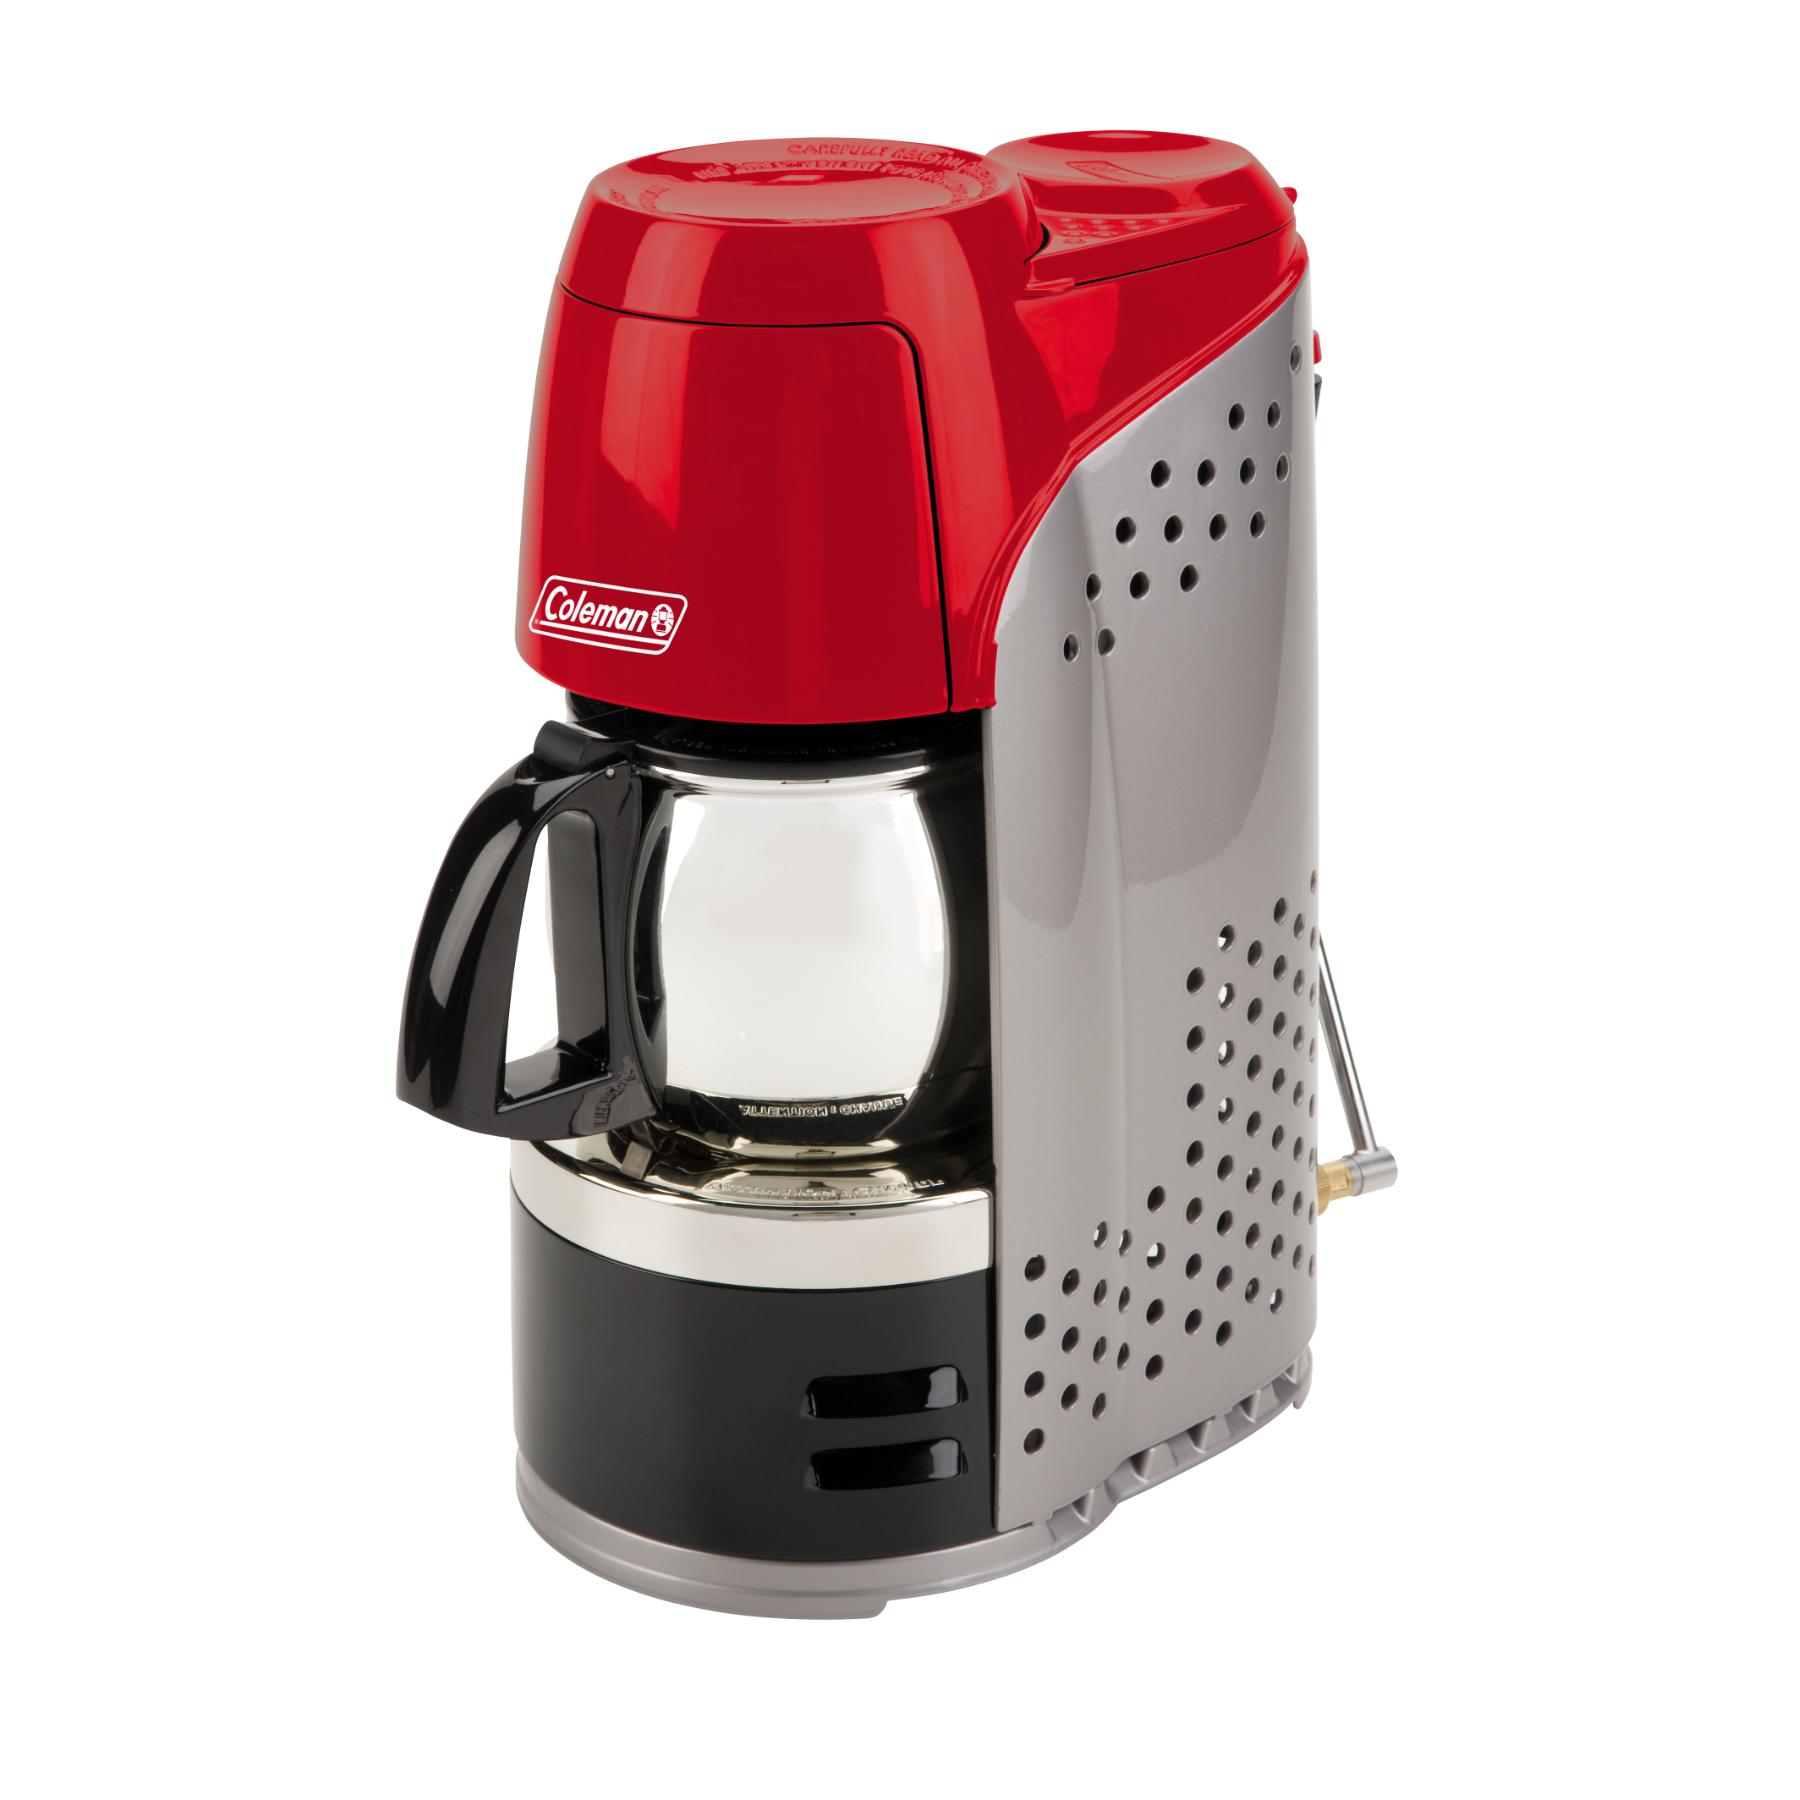 Coleman Camping Coffee Maker Review : Coleman InstaStart Coffeemaker Holds 10 cups